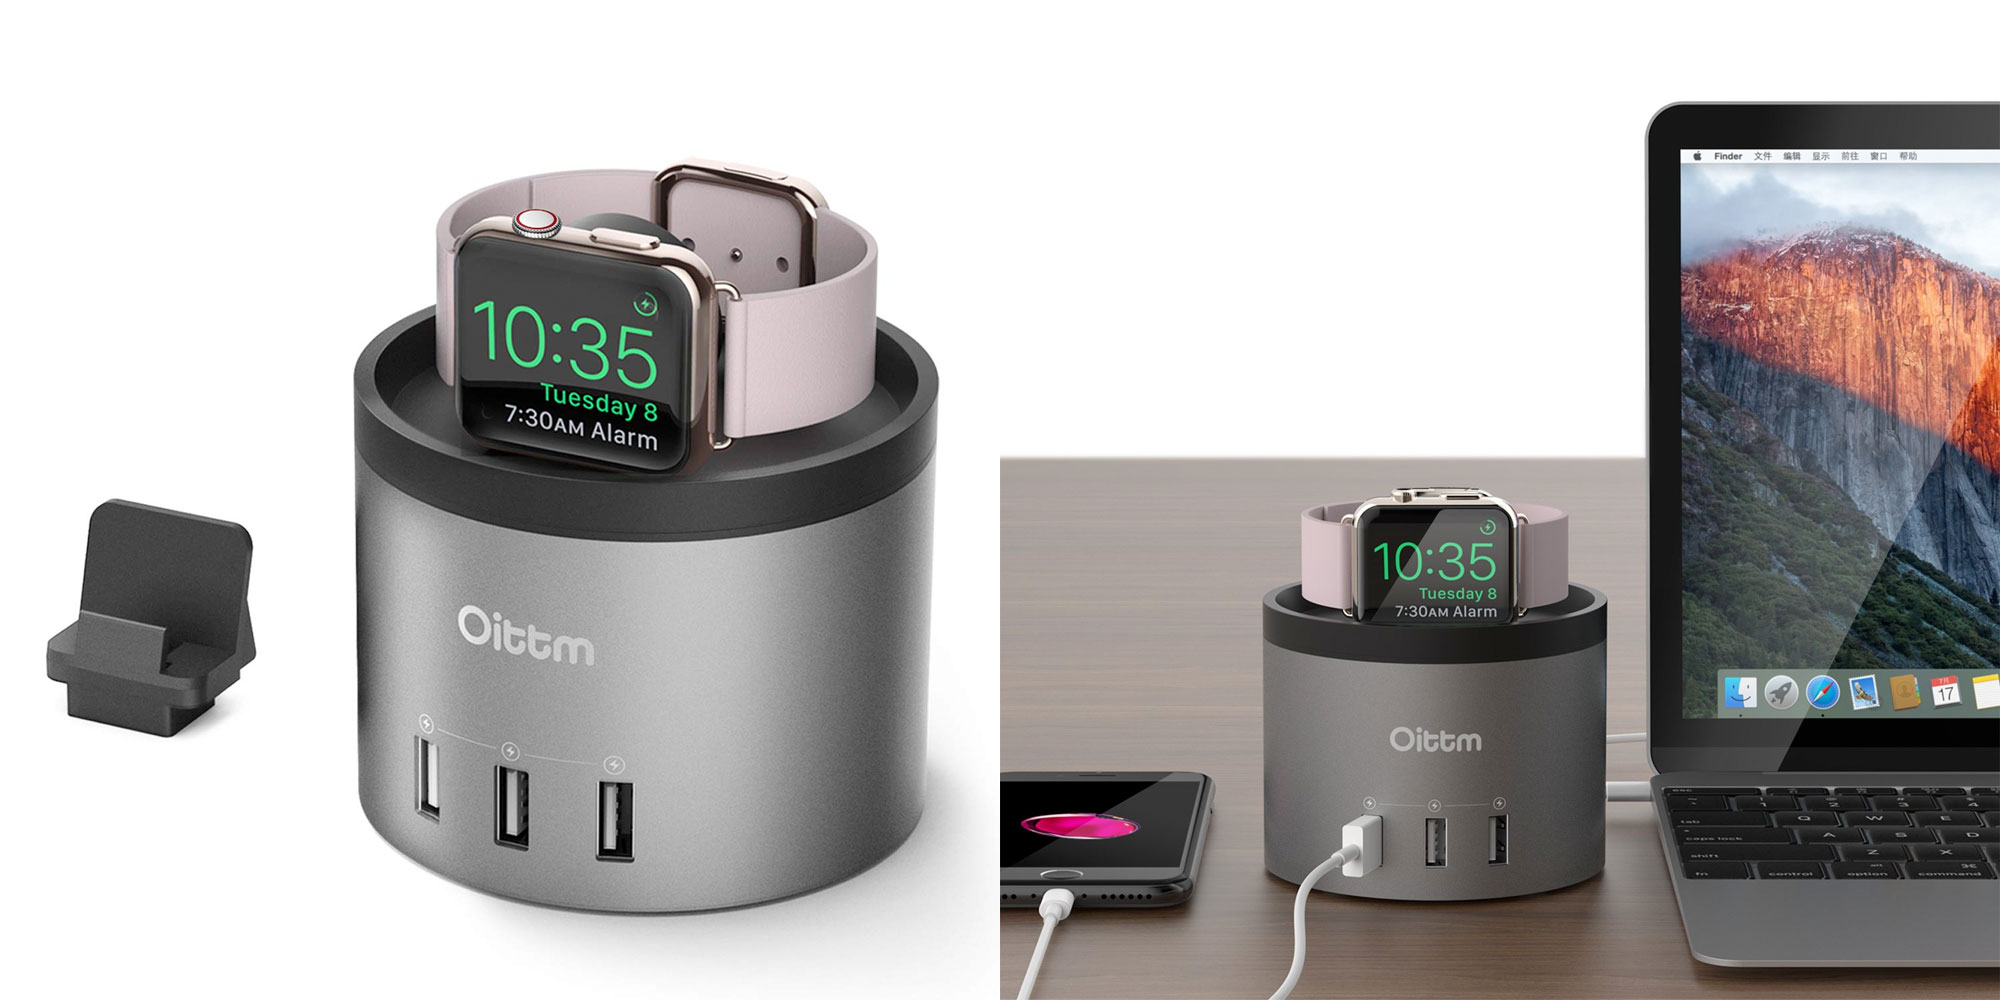 This Apple Watch charging dock also has three 2.4A USB ports for $19